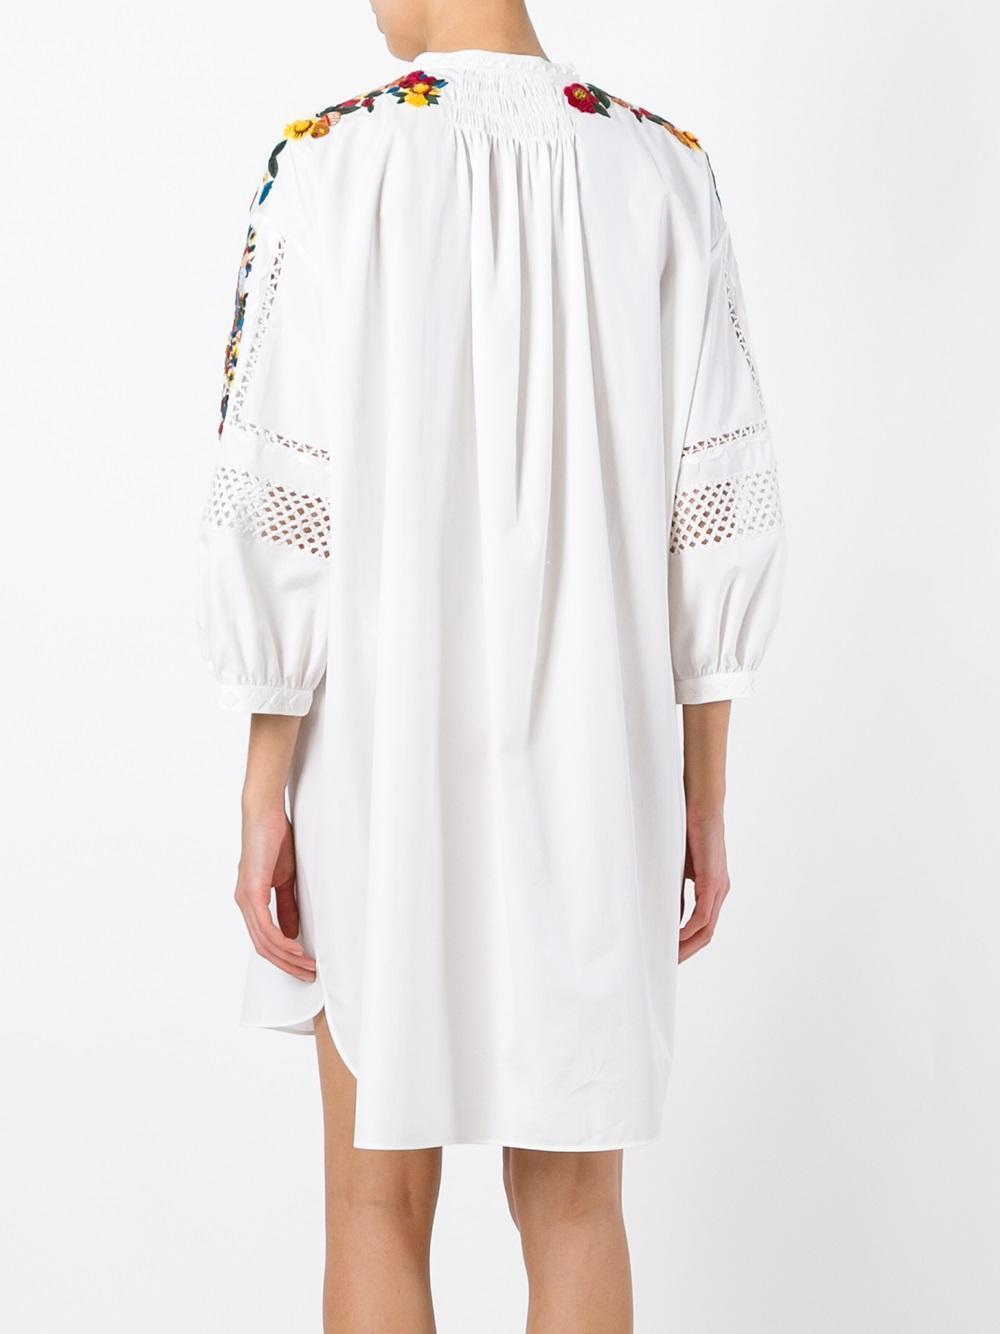 17SS V628 LOOK45 BUTTERFLY & FLOWER EMBROIDERED TUNIC DRESS